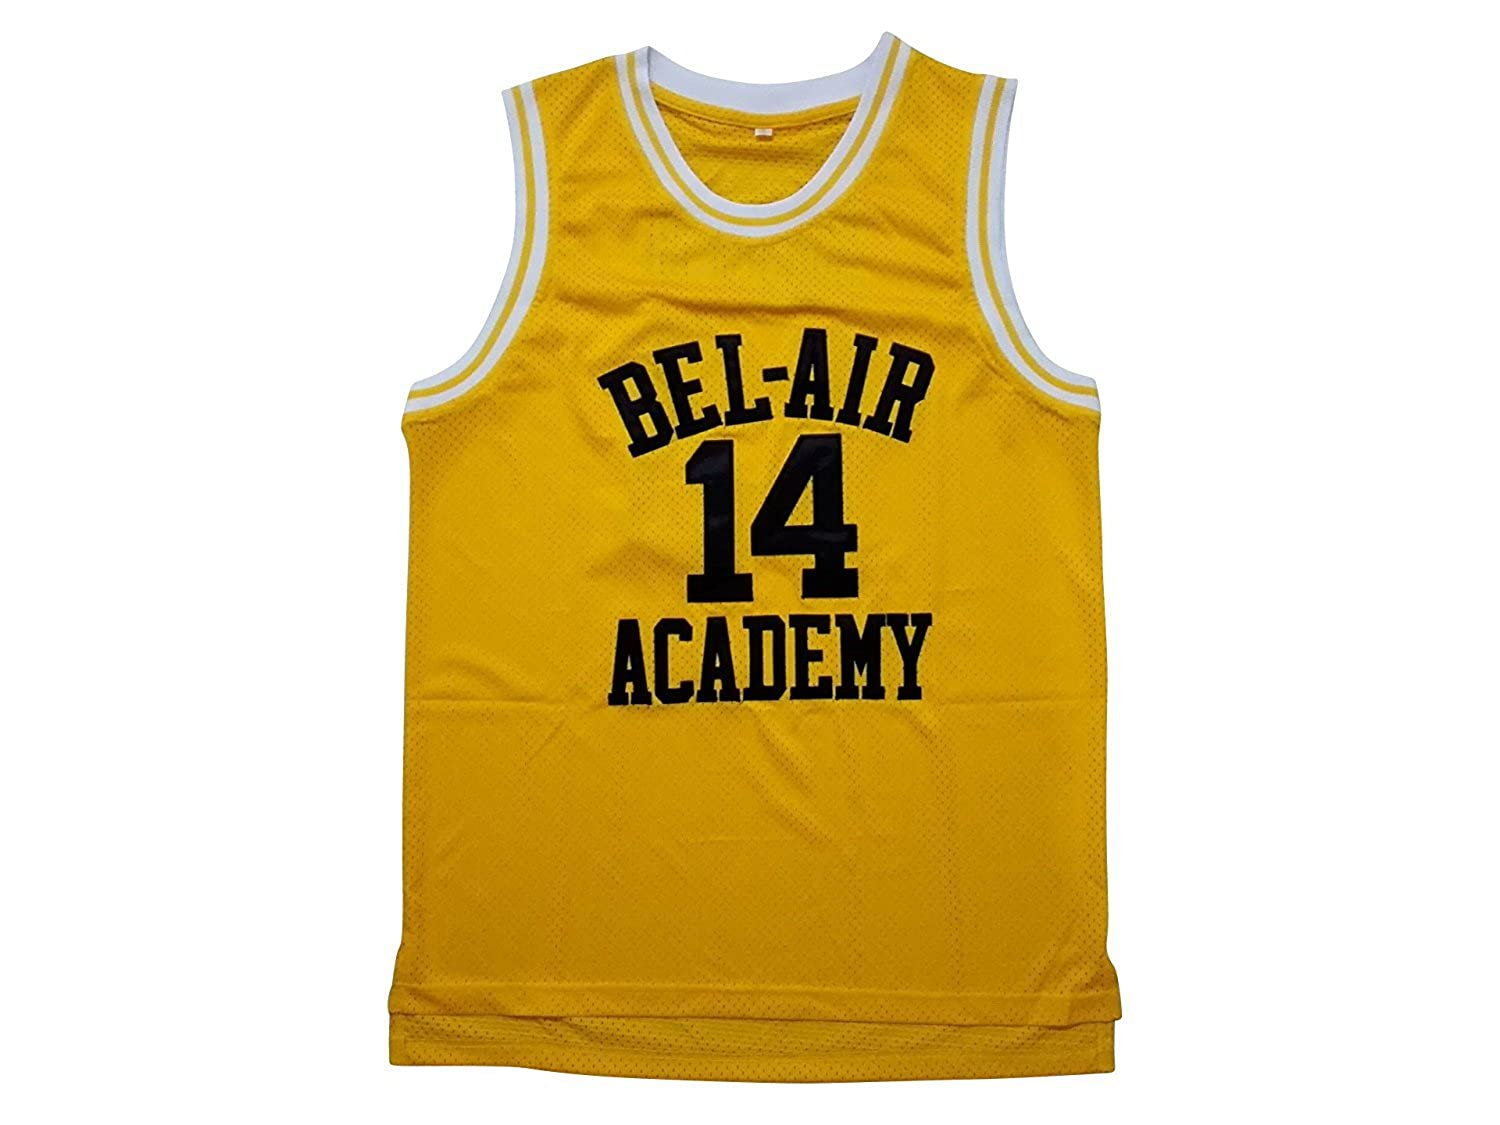 Kooy Will Smith Fresh Prince of Bel Air Academy Jersey Basketball Men